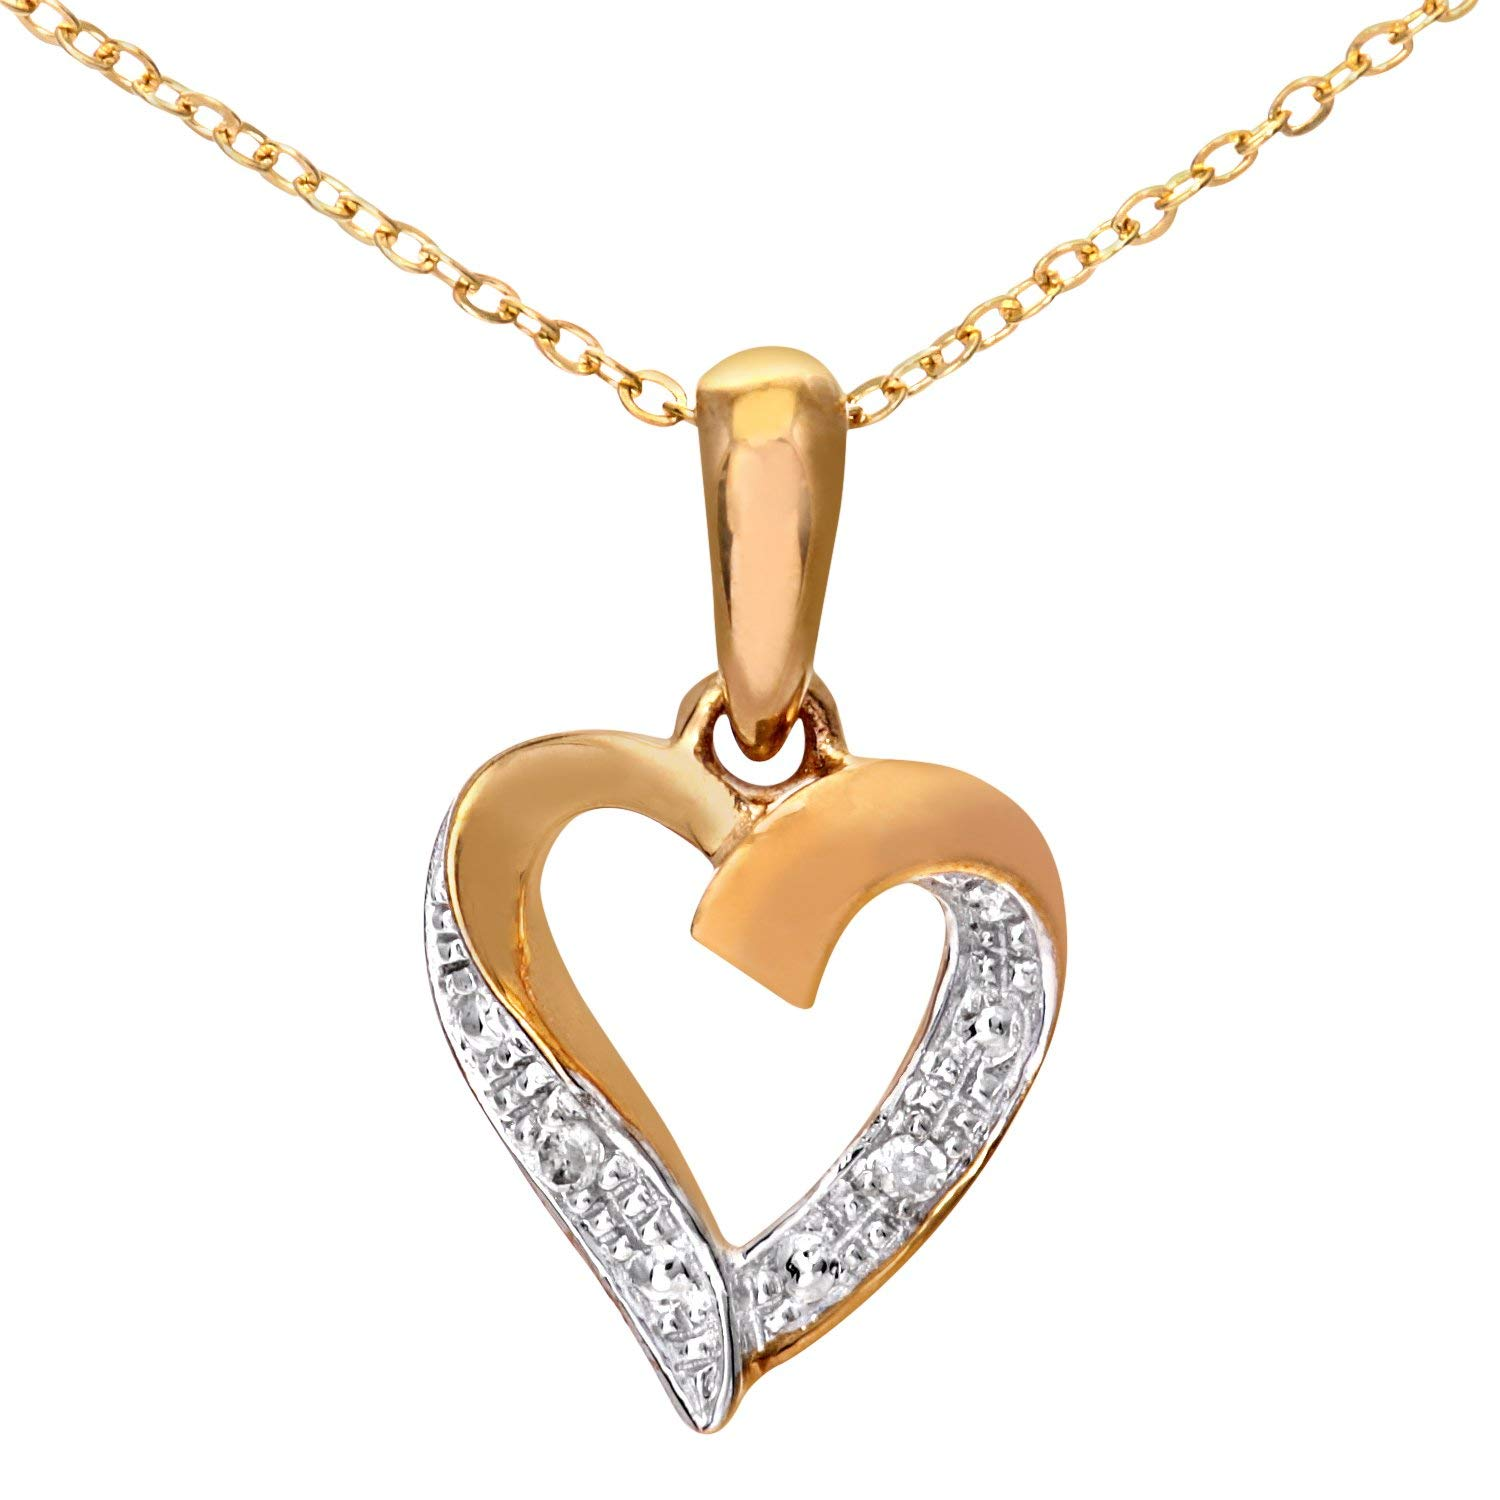 Naava Women's 9 ct Yellow Gold Diamond Heart Pendant and Chain Necklace of 46 cm for £45.00